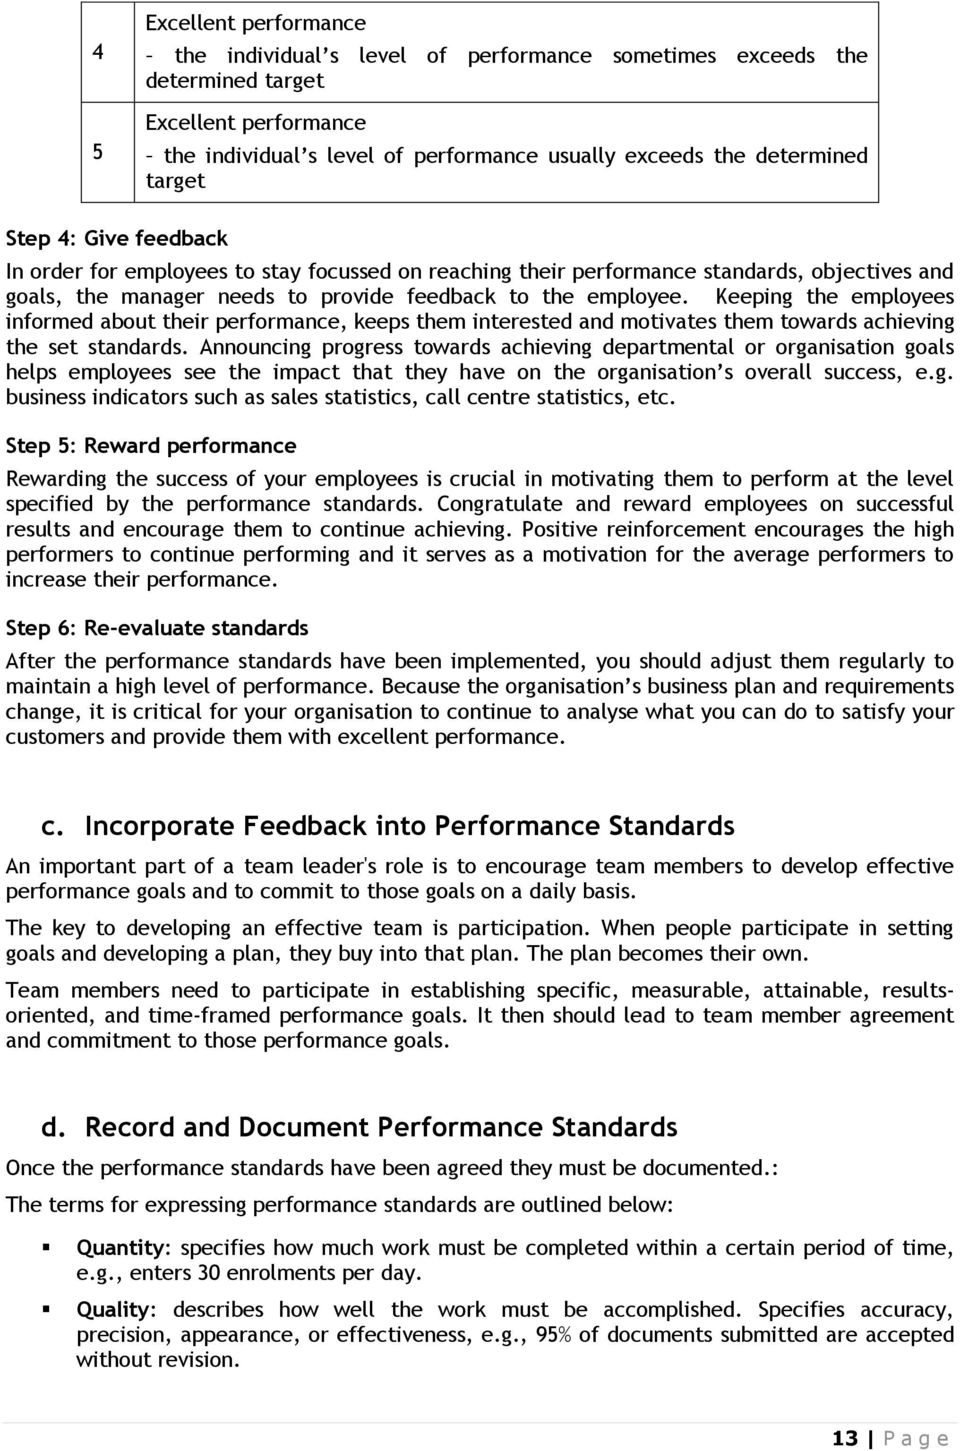 Monitor and evaluate team members against performance standards ...